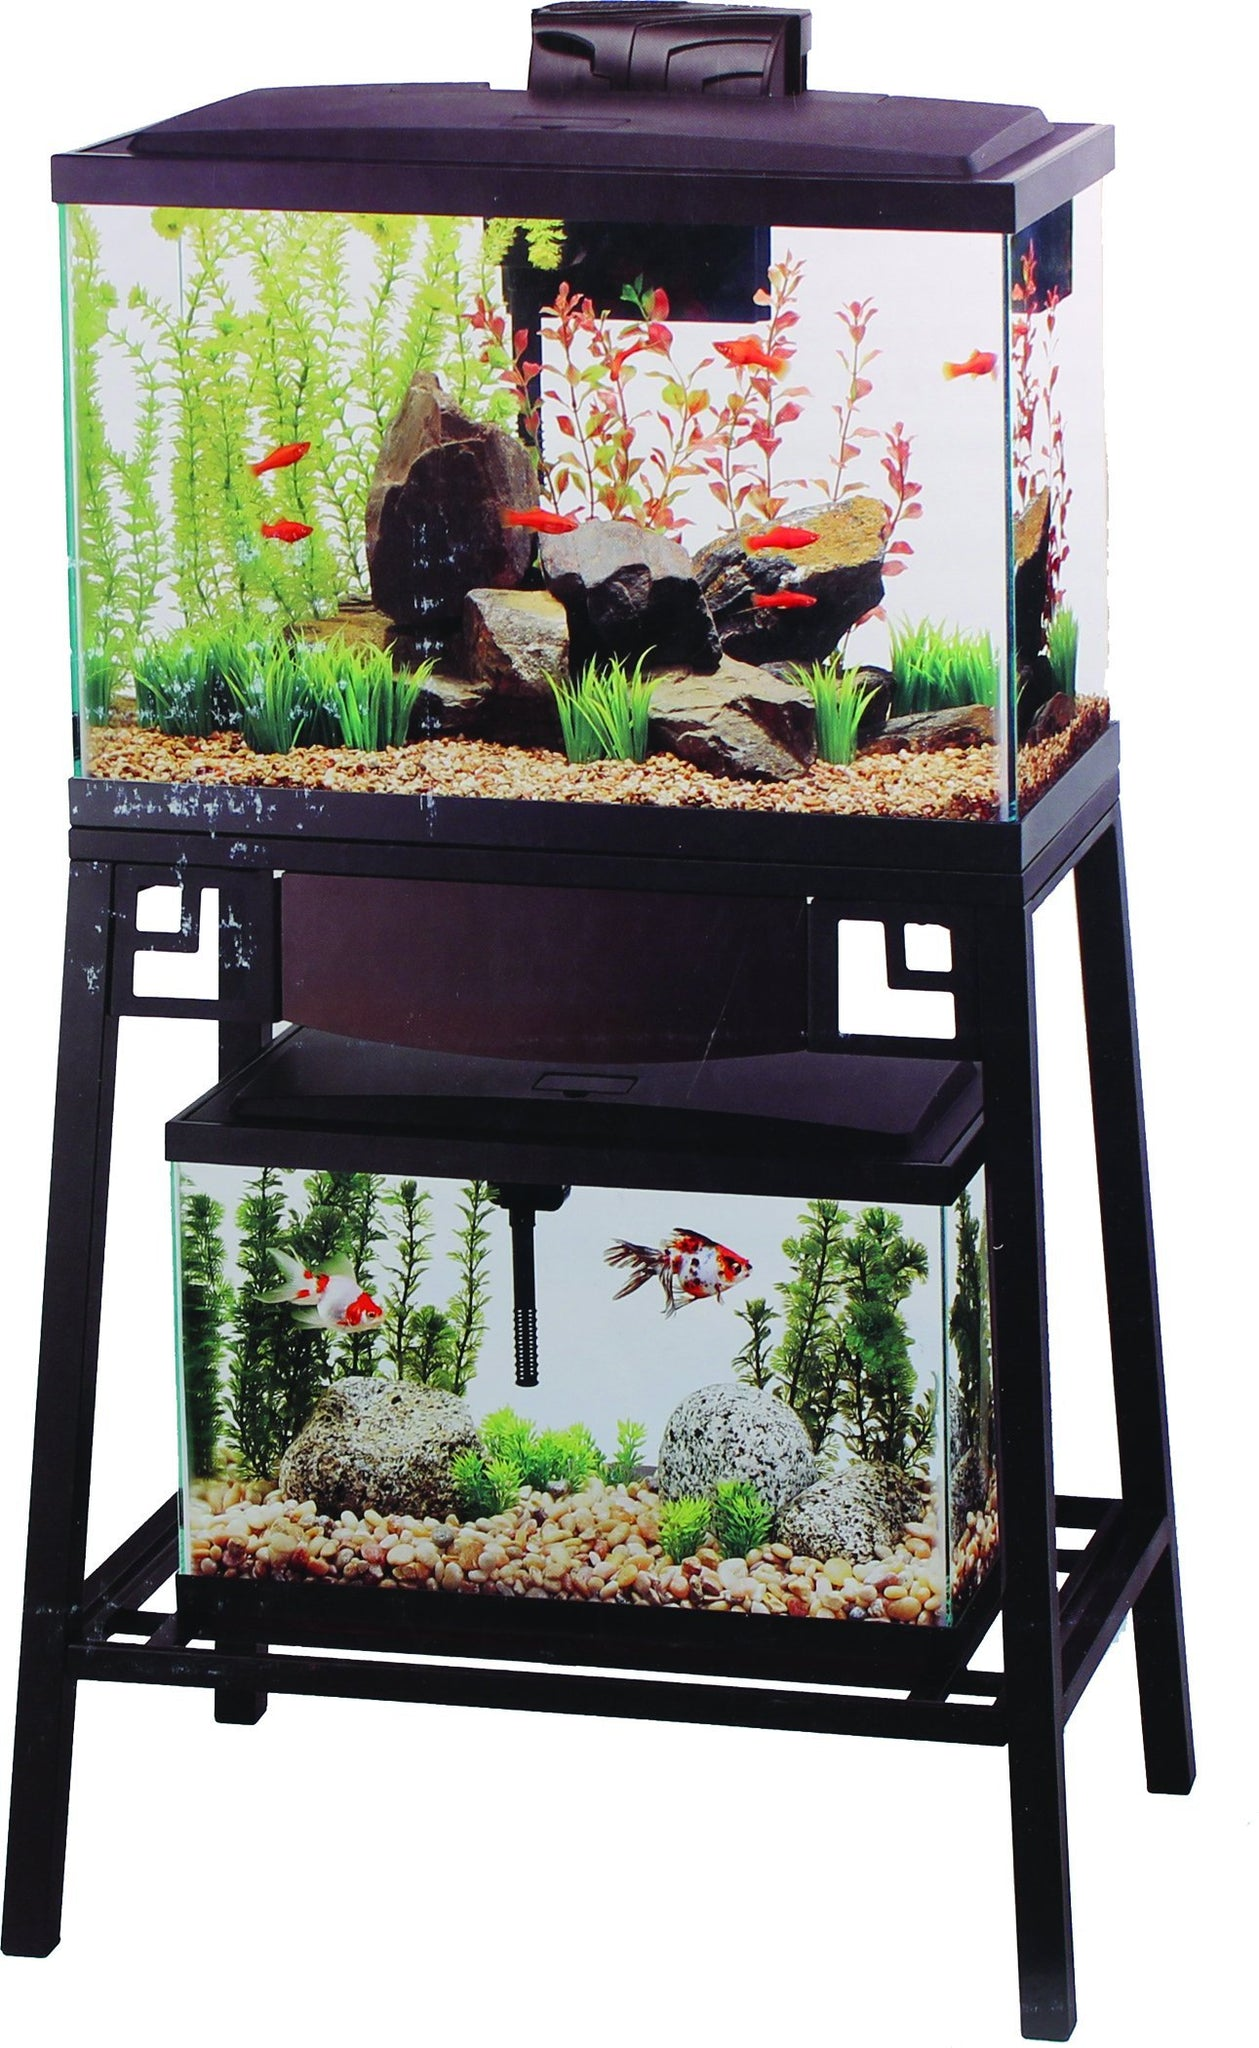 --Aqueon Forge Metal Aquarium Stand, 24 by 12-Inch, Black--